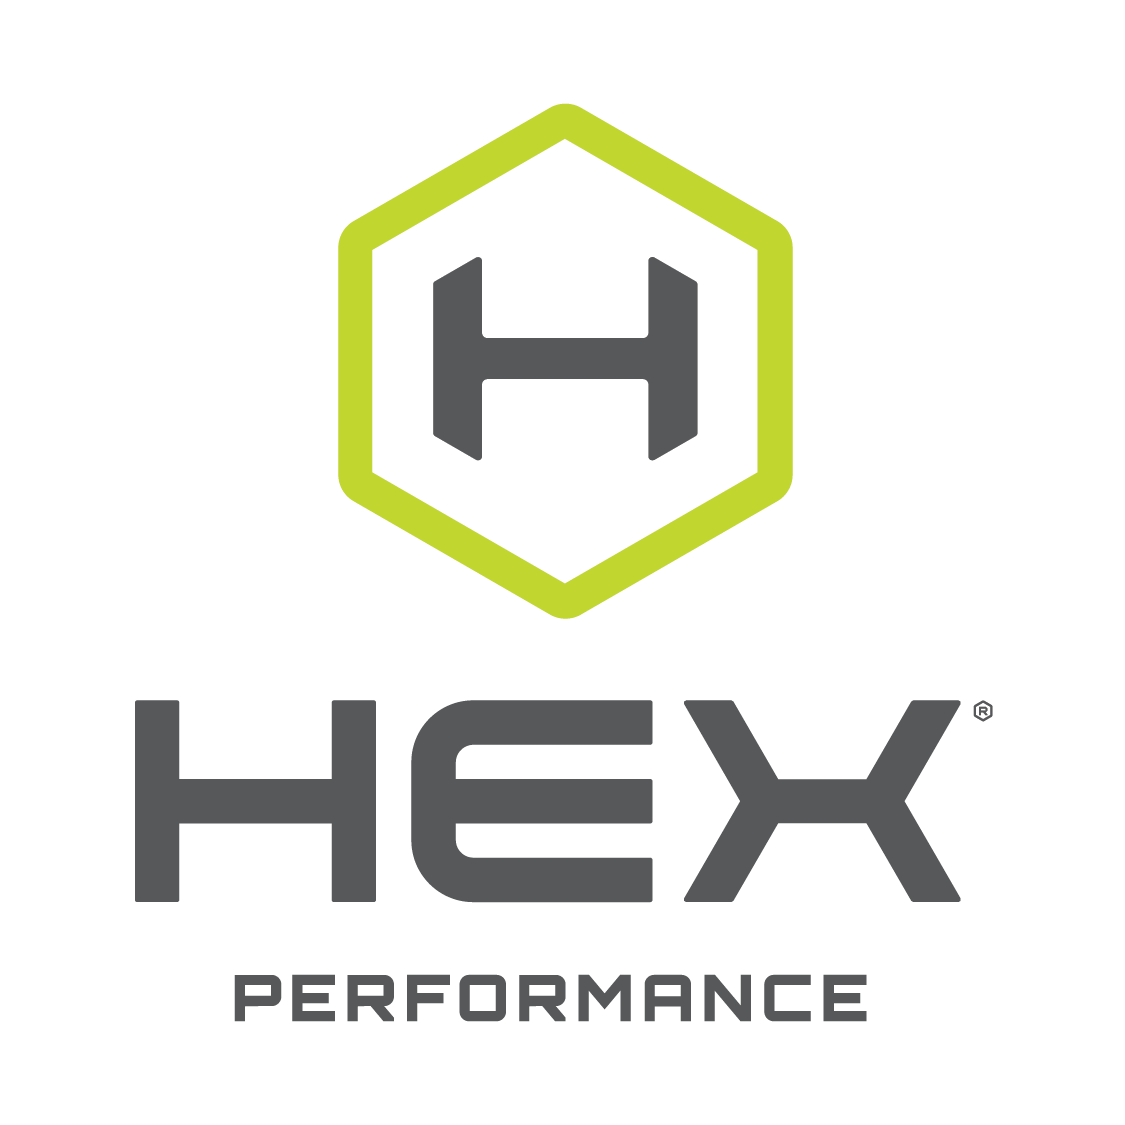 HEX Performance light bg.png